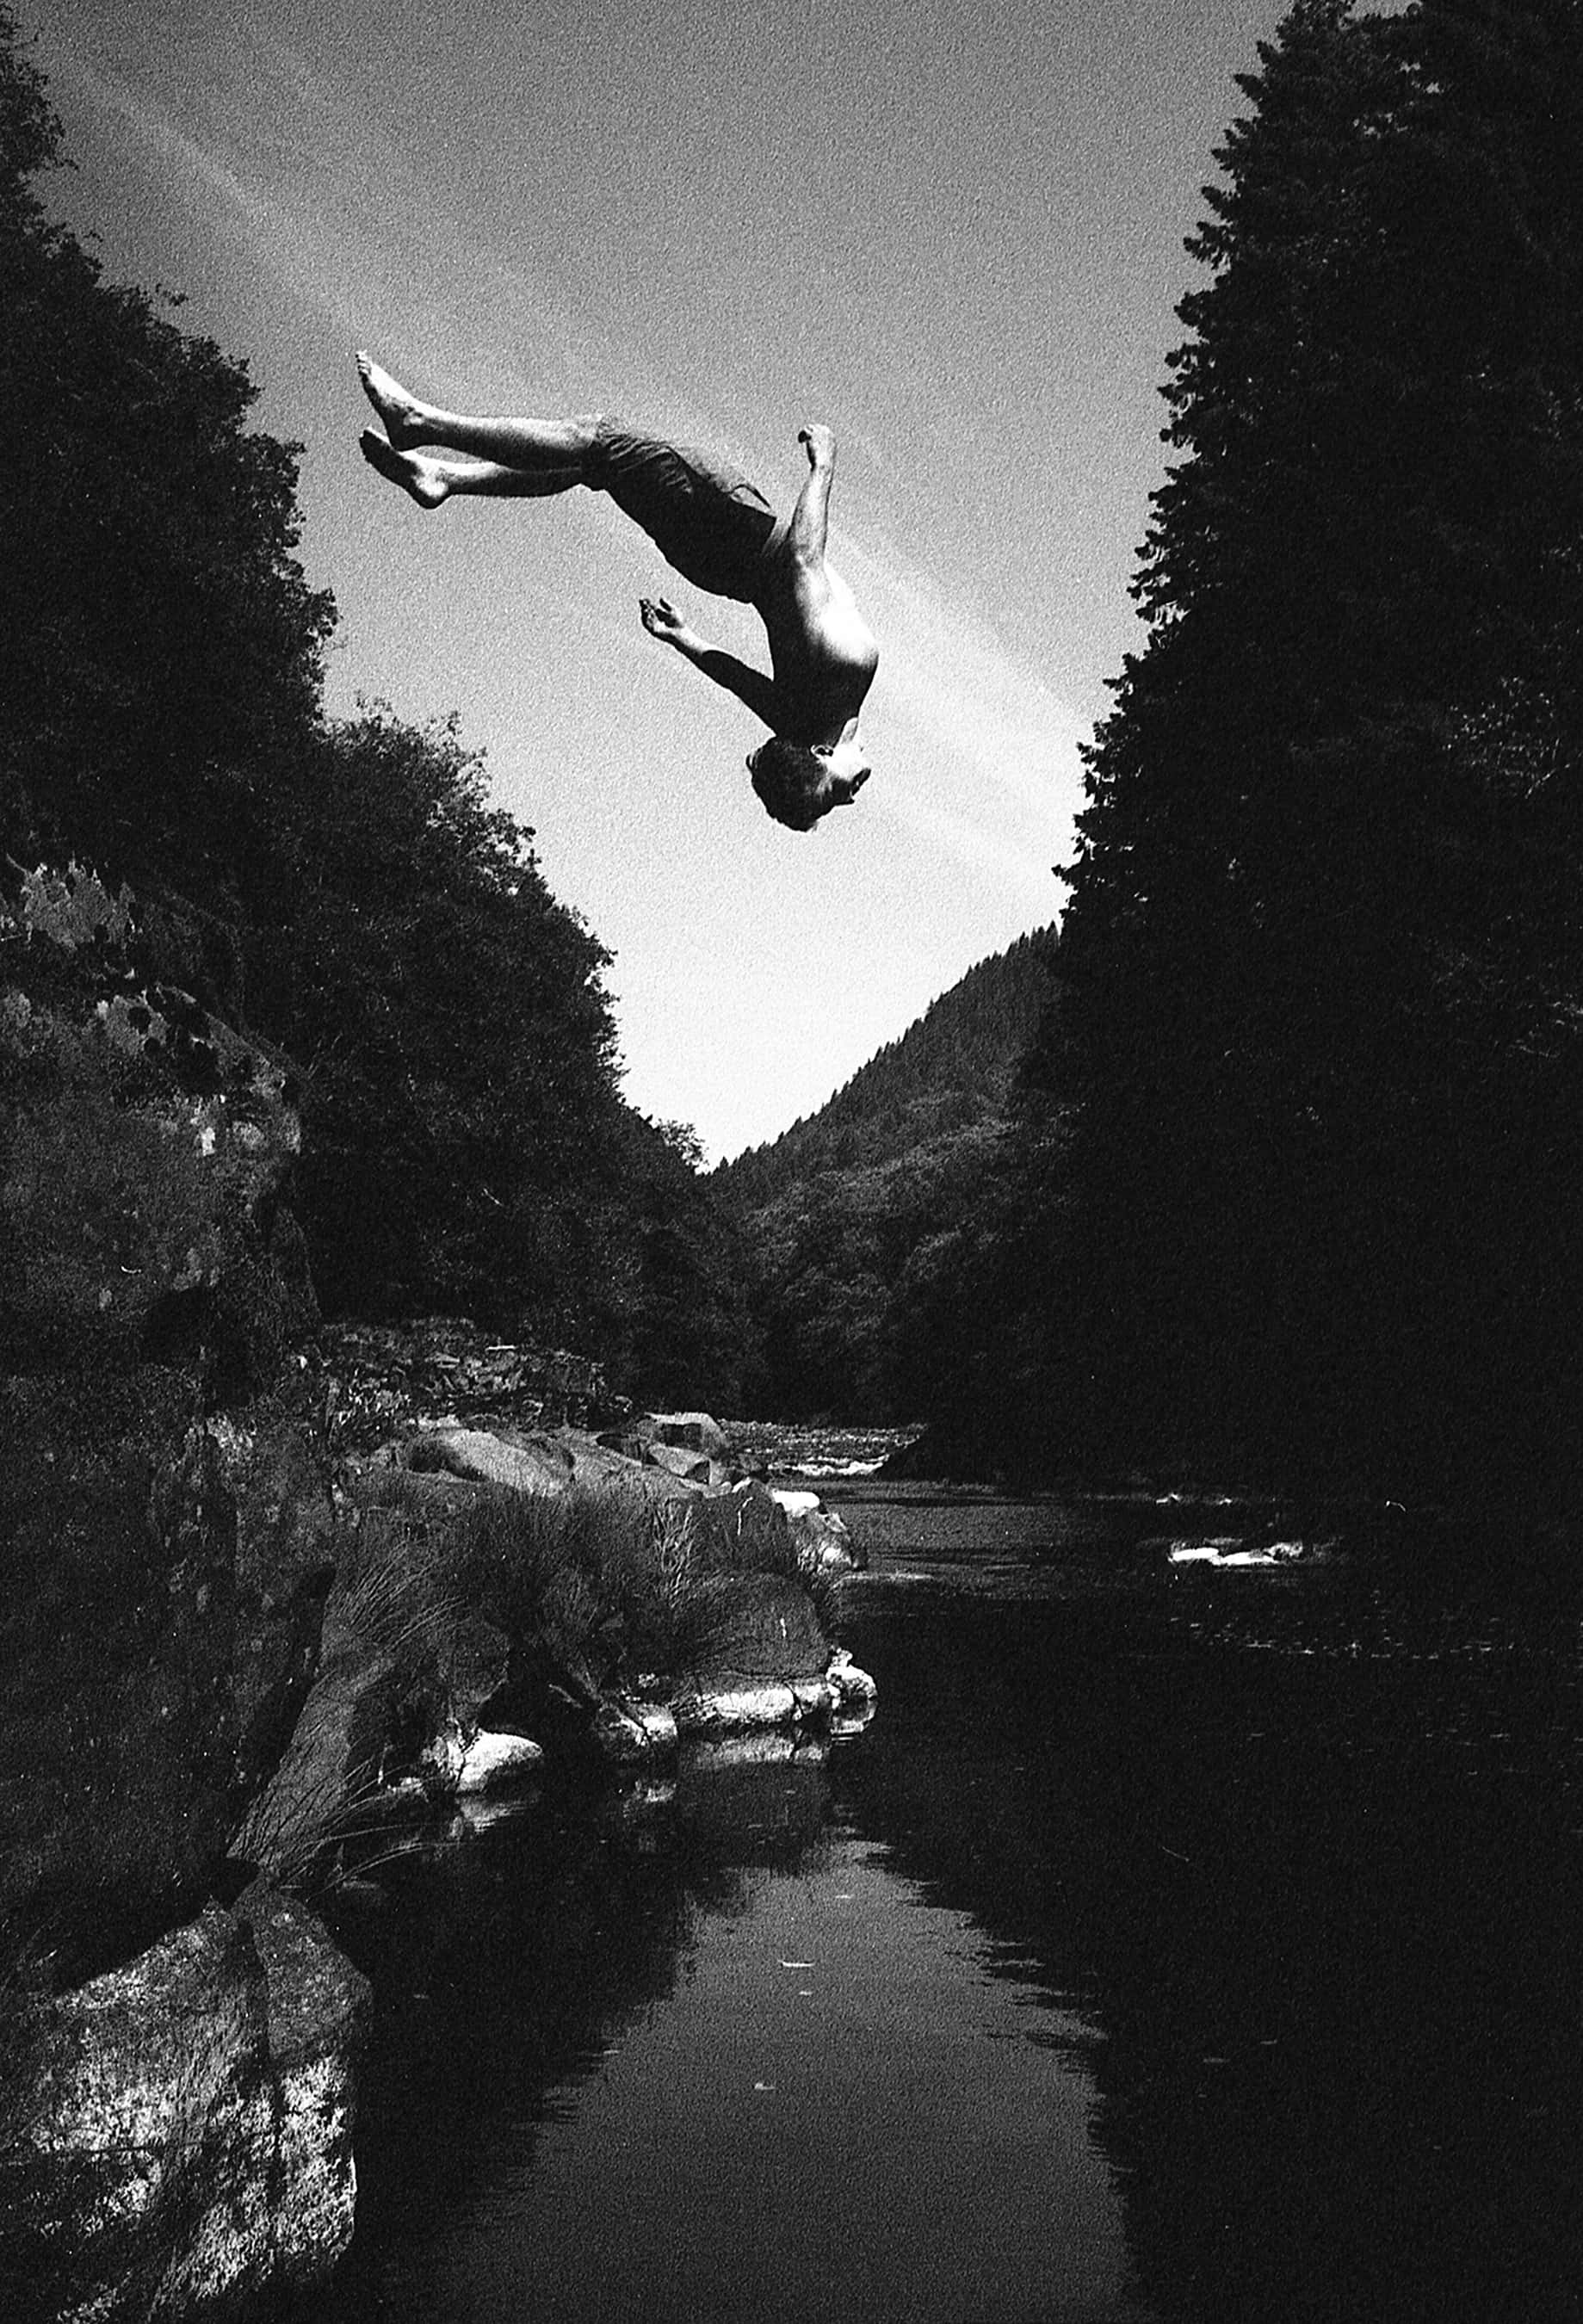 A man does a backflip into a pool of water, black and white photo.